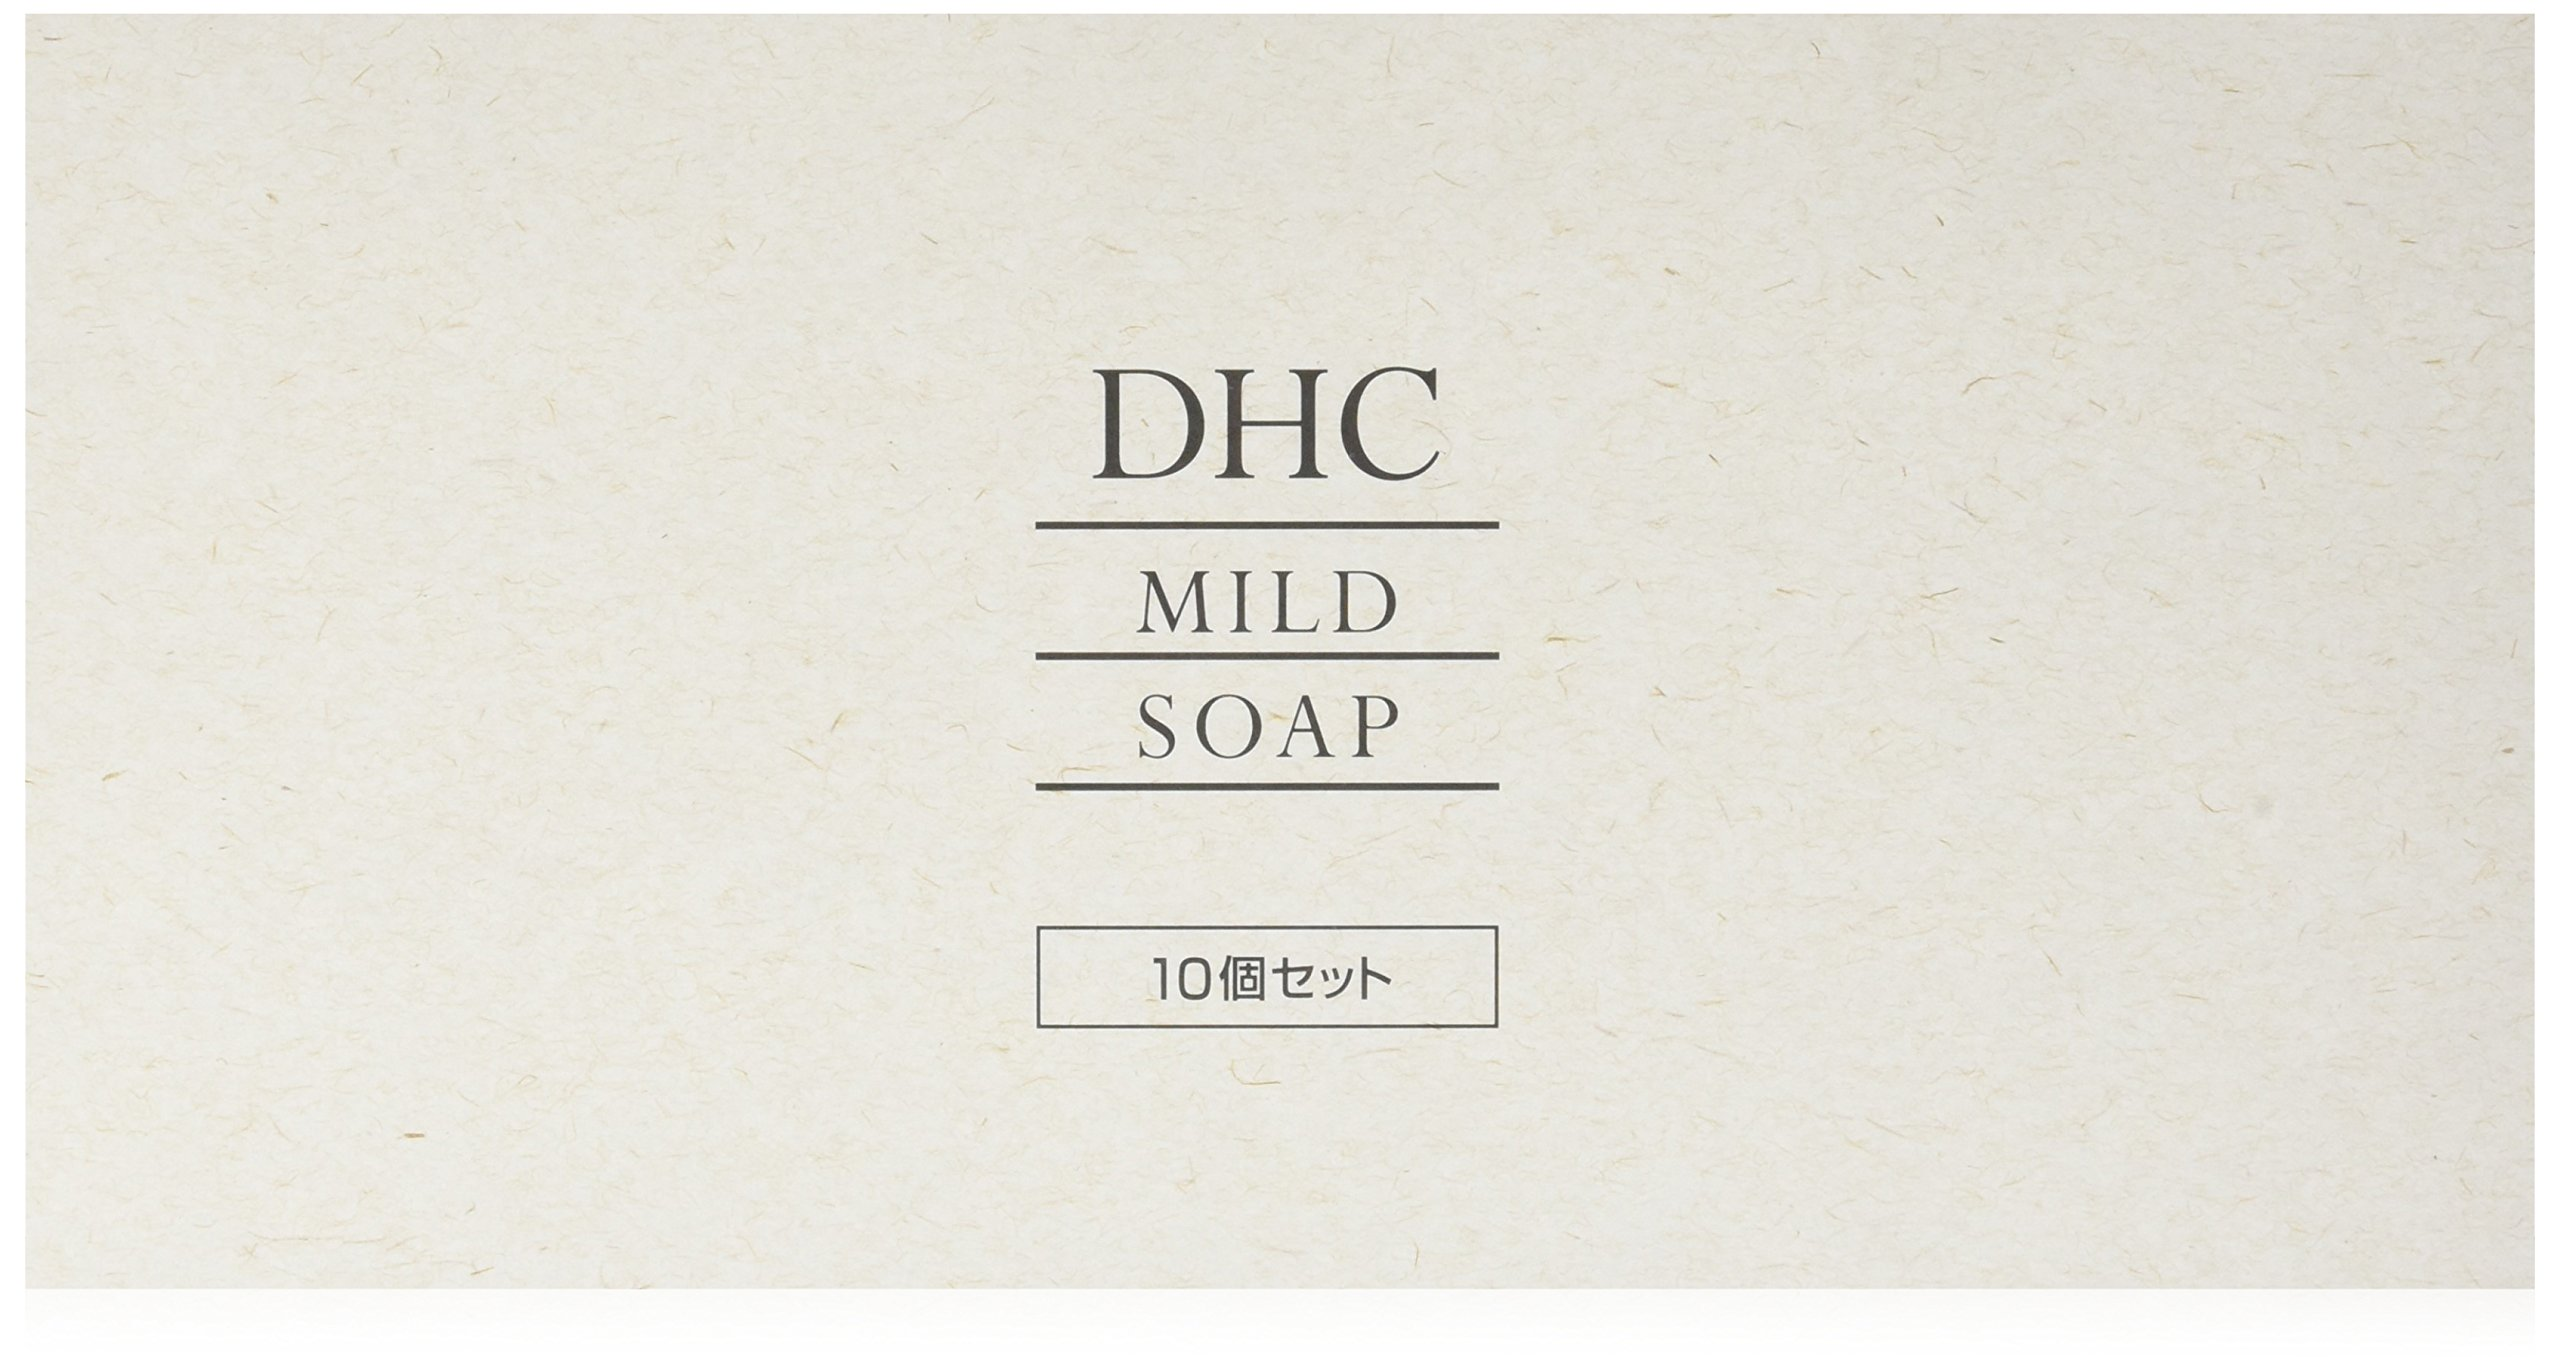 Japan Health and Beauty - DHC mild soap 10 pieces *AF27*